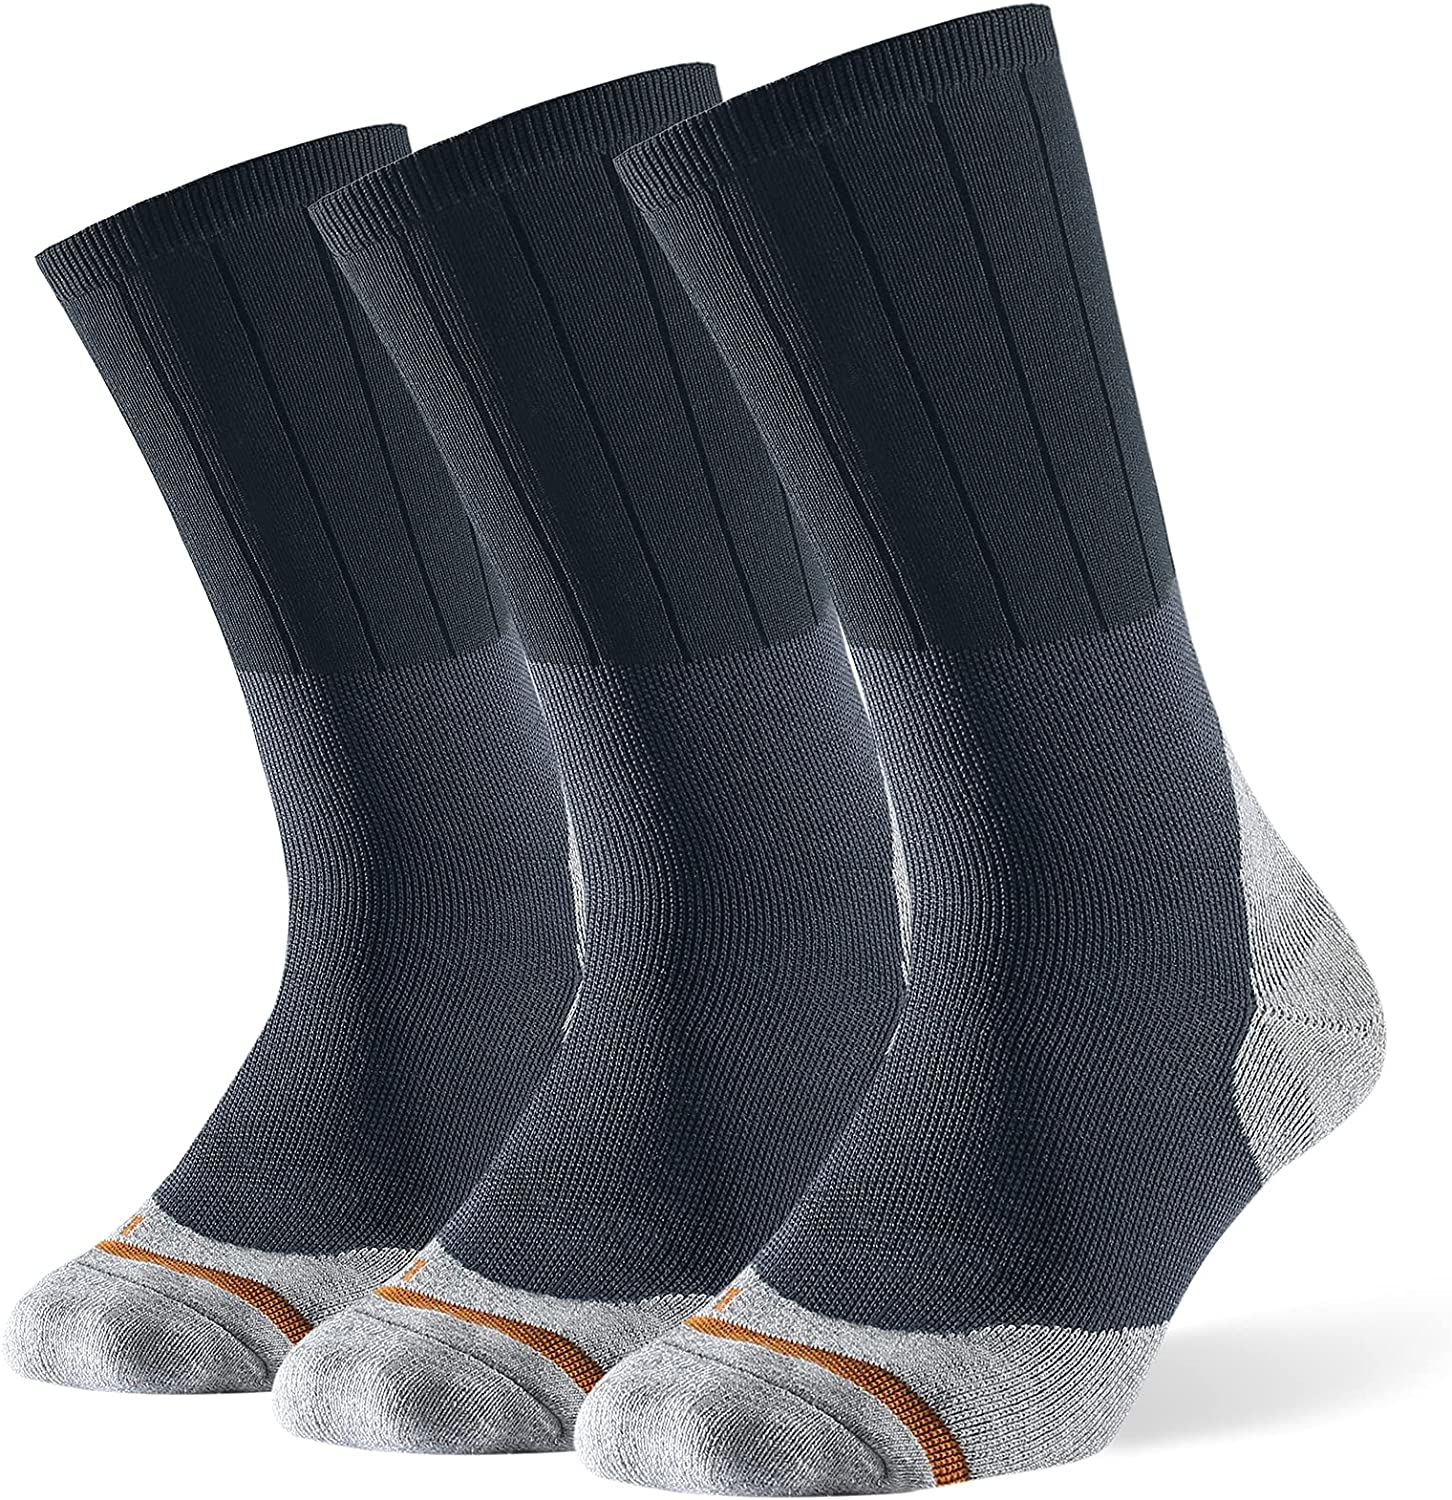 Max 65% OFF WANDER Men's Athletic Socks 3 Running Cushion Excellent Thick Pairs